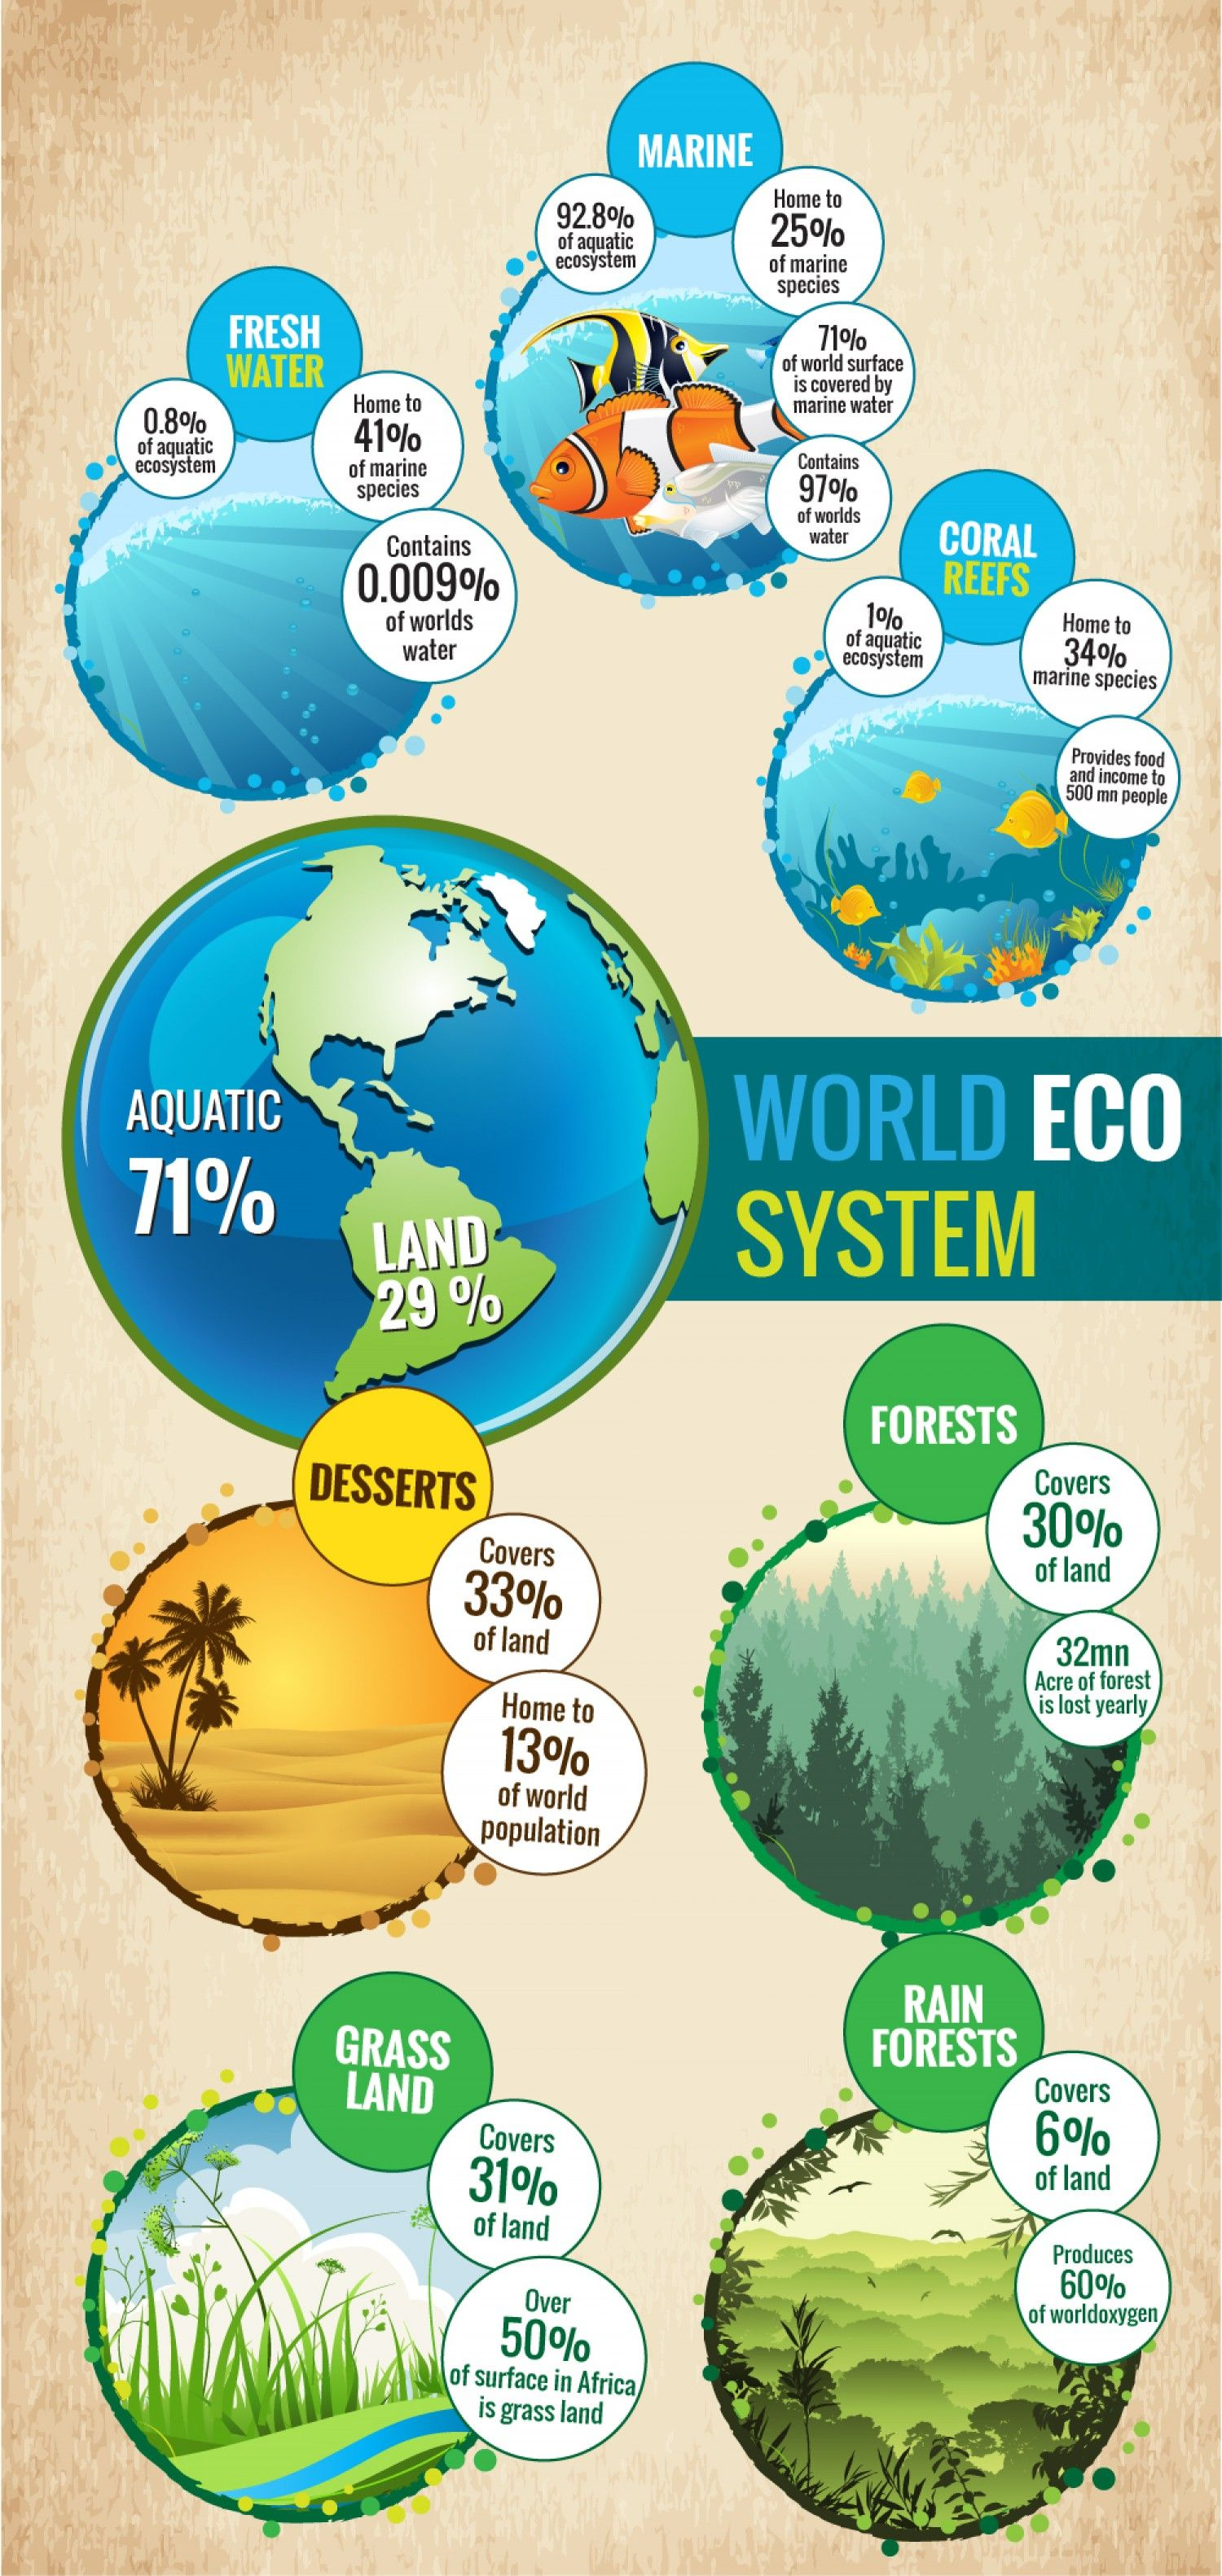 The Aquatic Eco System Infographic